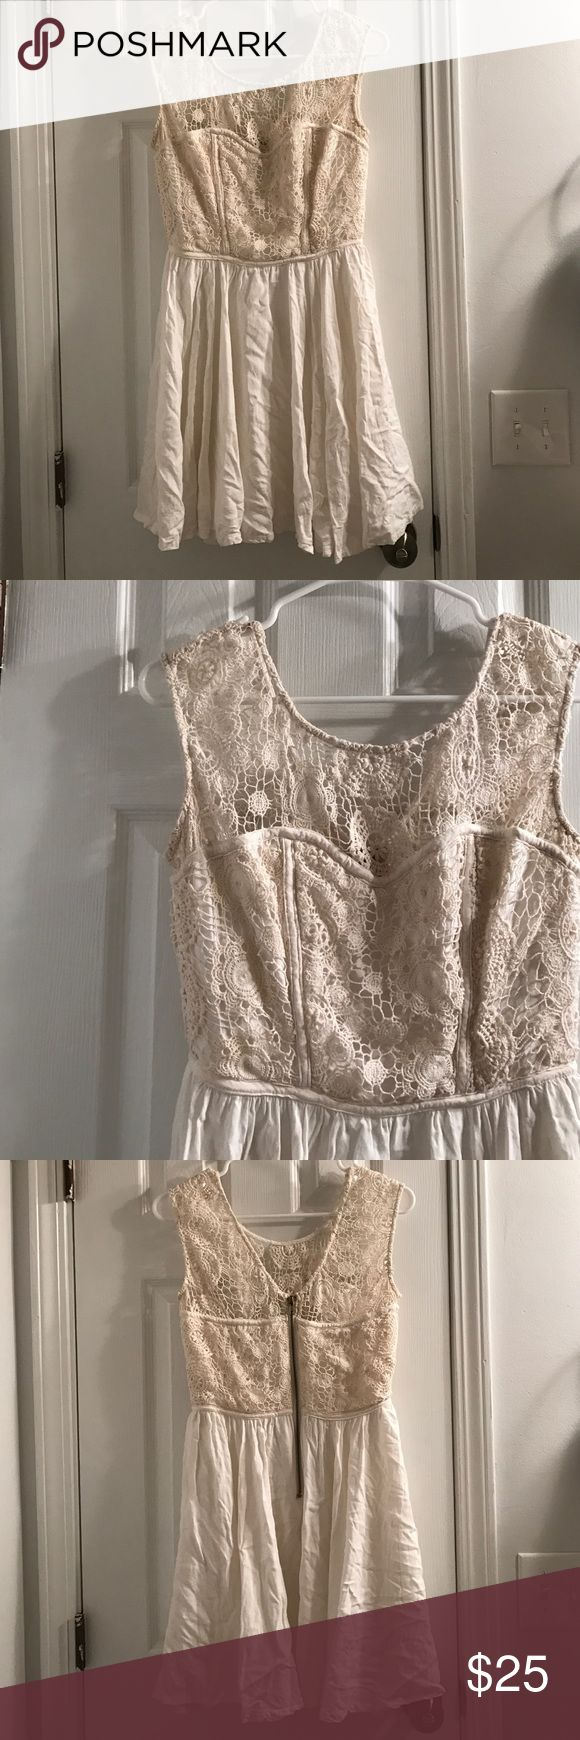 "Beautiful Cream Dress So cute and elegant. You can dress this up or down. Zips in the back. 100% rayon. Worn once for wedding party. Is lined. Length is approximately 32 inches. Fits like a medium. No trades. I am 5'7"" and this comes to a little above my knees (see last pic). GB Dresses"